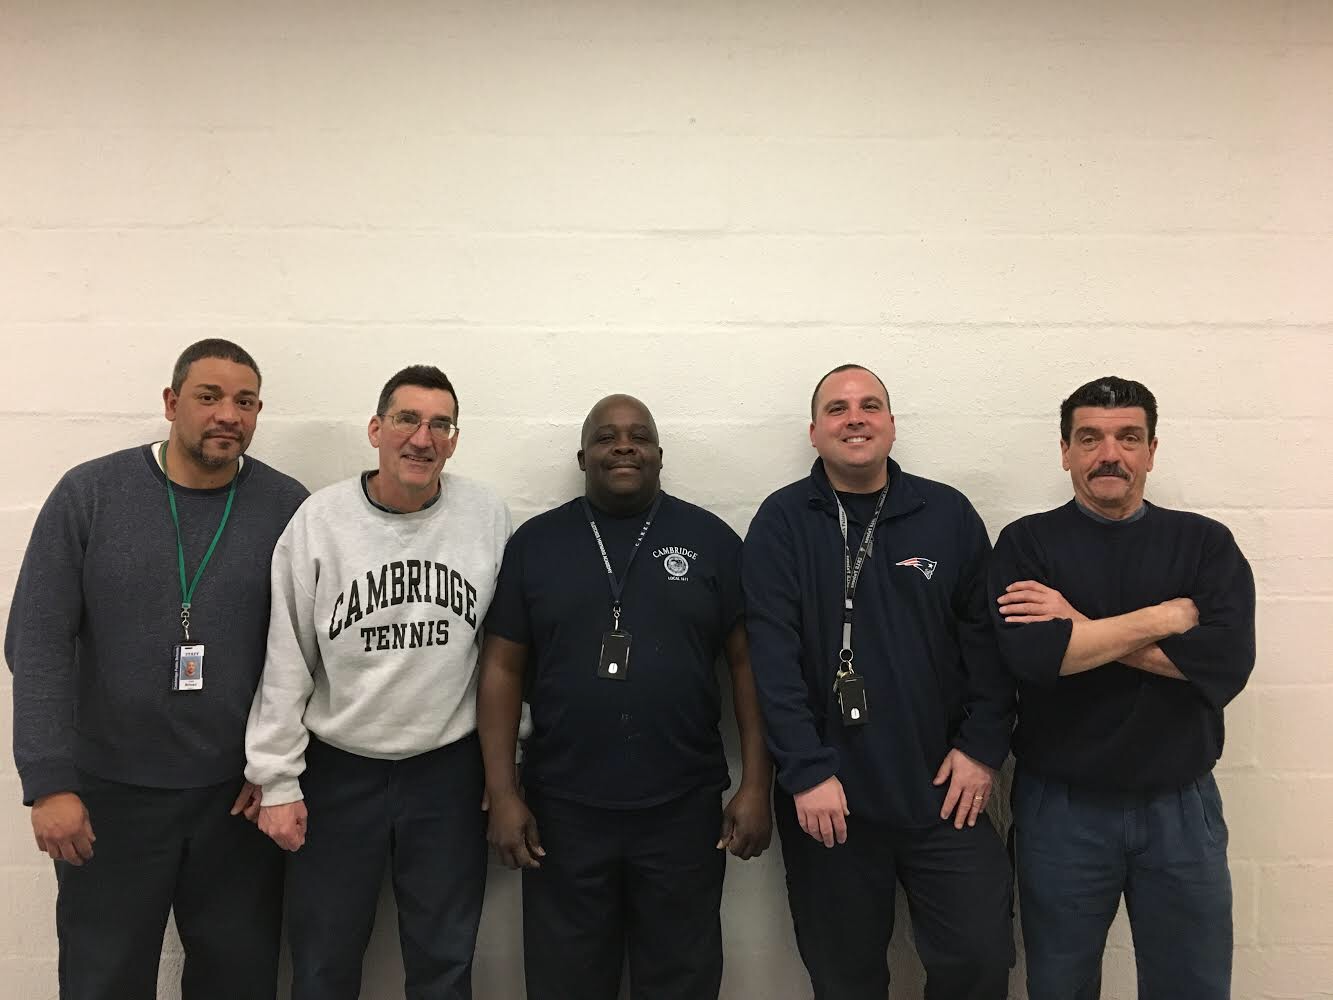 Jose Brioso (left), Dave Nadeau, Claude Lathan, Robbie Cataldo, and Richie Corcione are part of the daytime custodial staff.